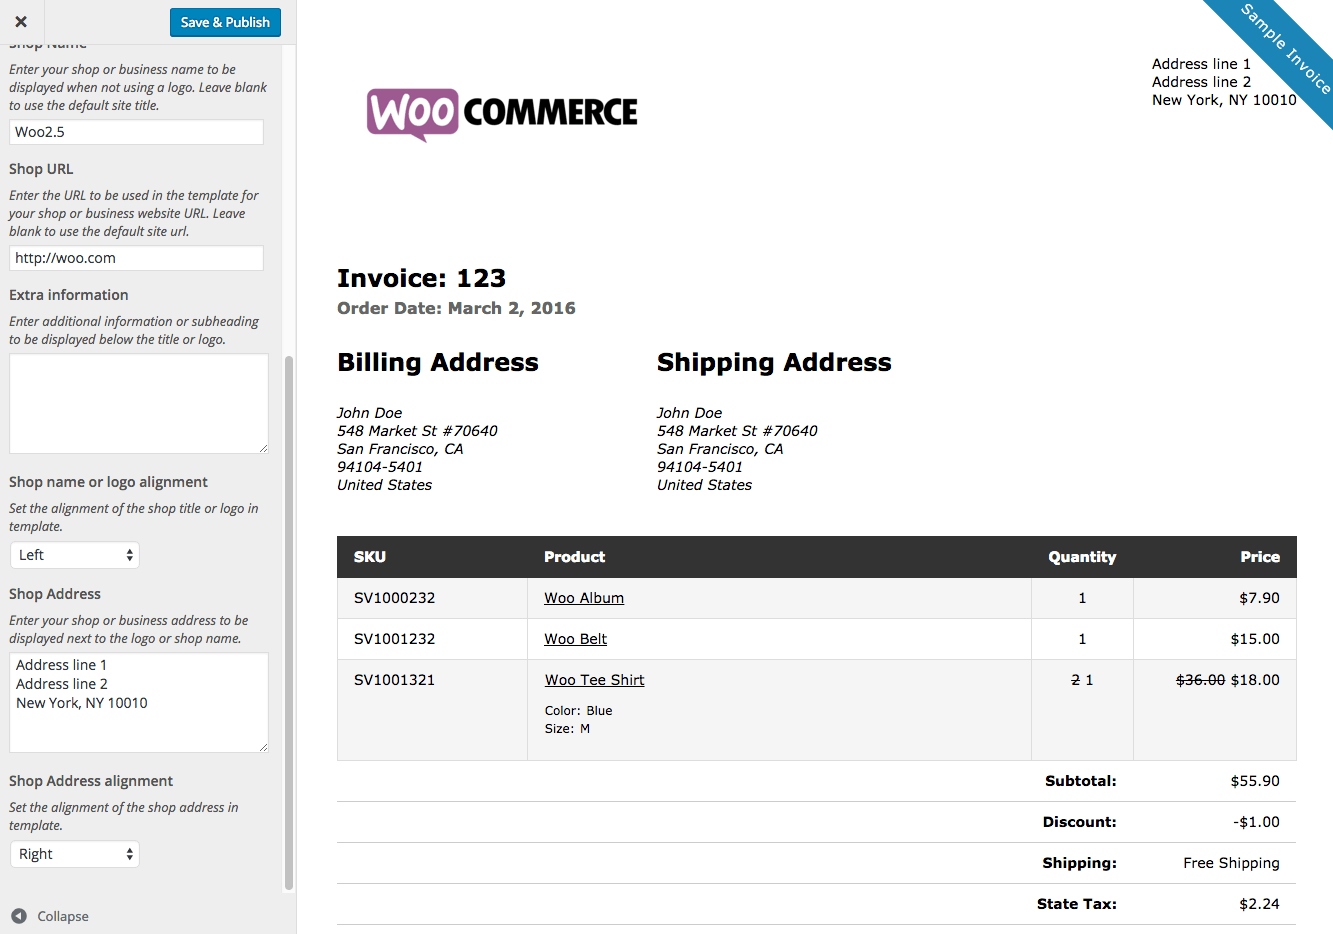 Centralasianshepherdus  Terrific Print Invoices Amp Packing Lists  Woocommerce With Entrancing Woocommerce Print Invoices  Packing Lists Customizer With Easy On The Eye Invoices Online Also Commercial Invoice Fedex In Addition Basic Invoice Template And Paypal Invoice Safe As Well As Service Invoice Template Additionally Business Invoice Template From Woocommercecom With Centralasianshepherdus  Entrancing Print Invoices Amp Packing Lists  Woocommerce With Easy On The Eye Woocommerce Print Invoices  Packing Lists Customizer And Terrific Invoices Online Also Commercial Invoice Fedex In Addition Basic Invoice Template From Woocommercecom